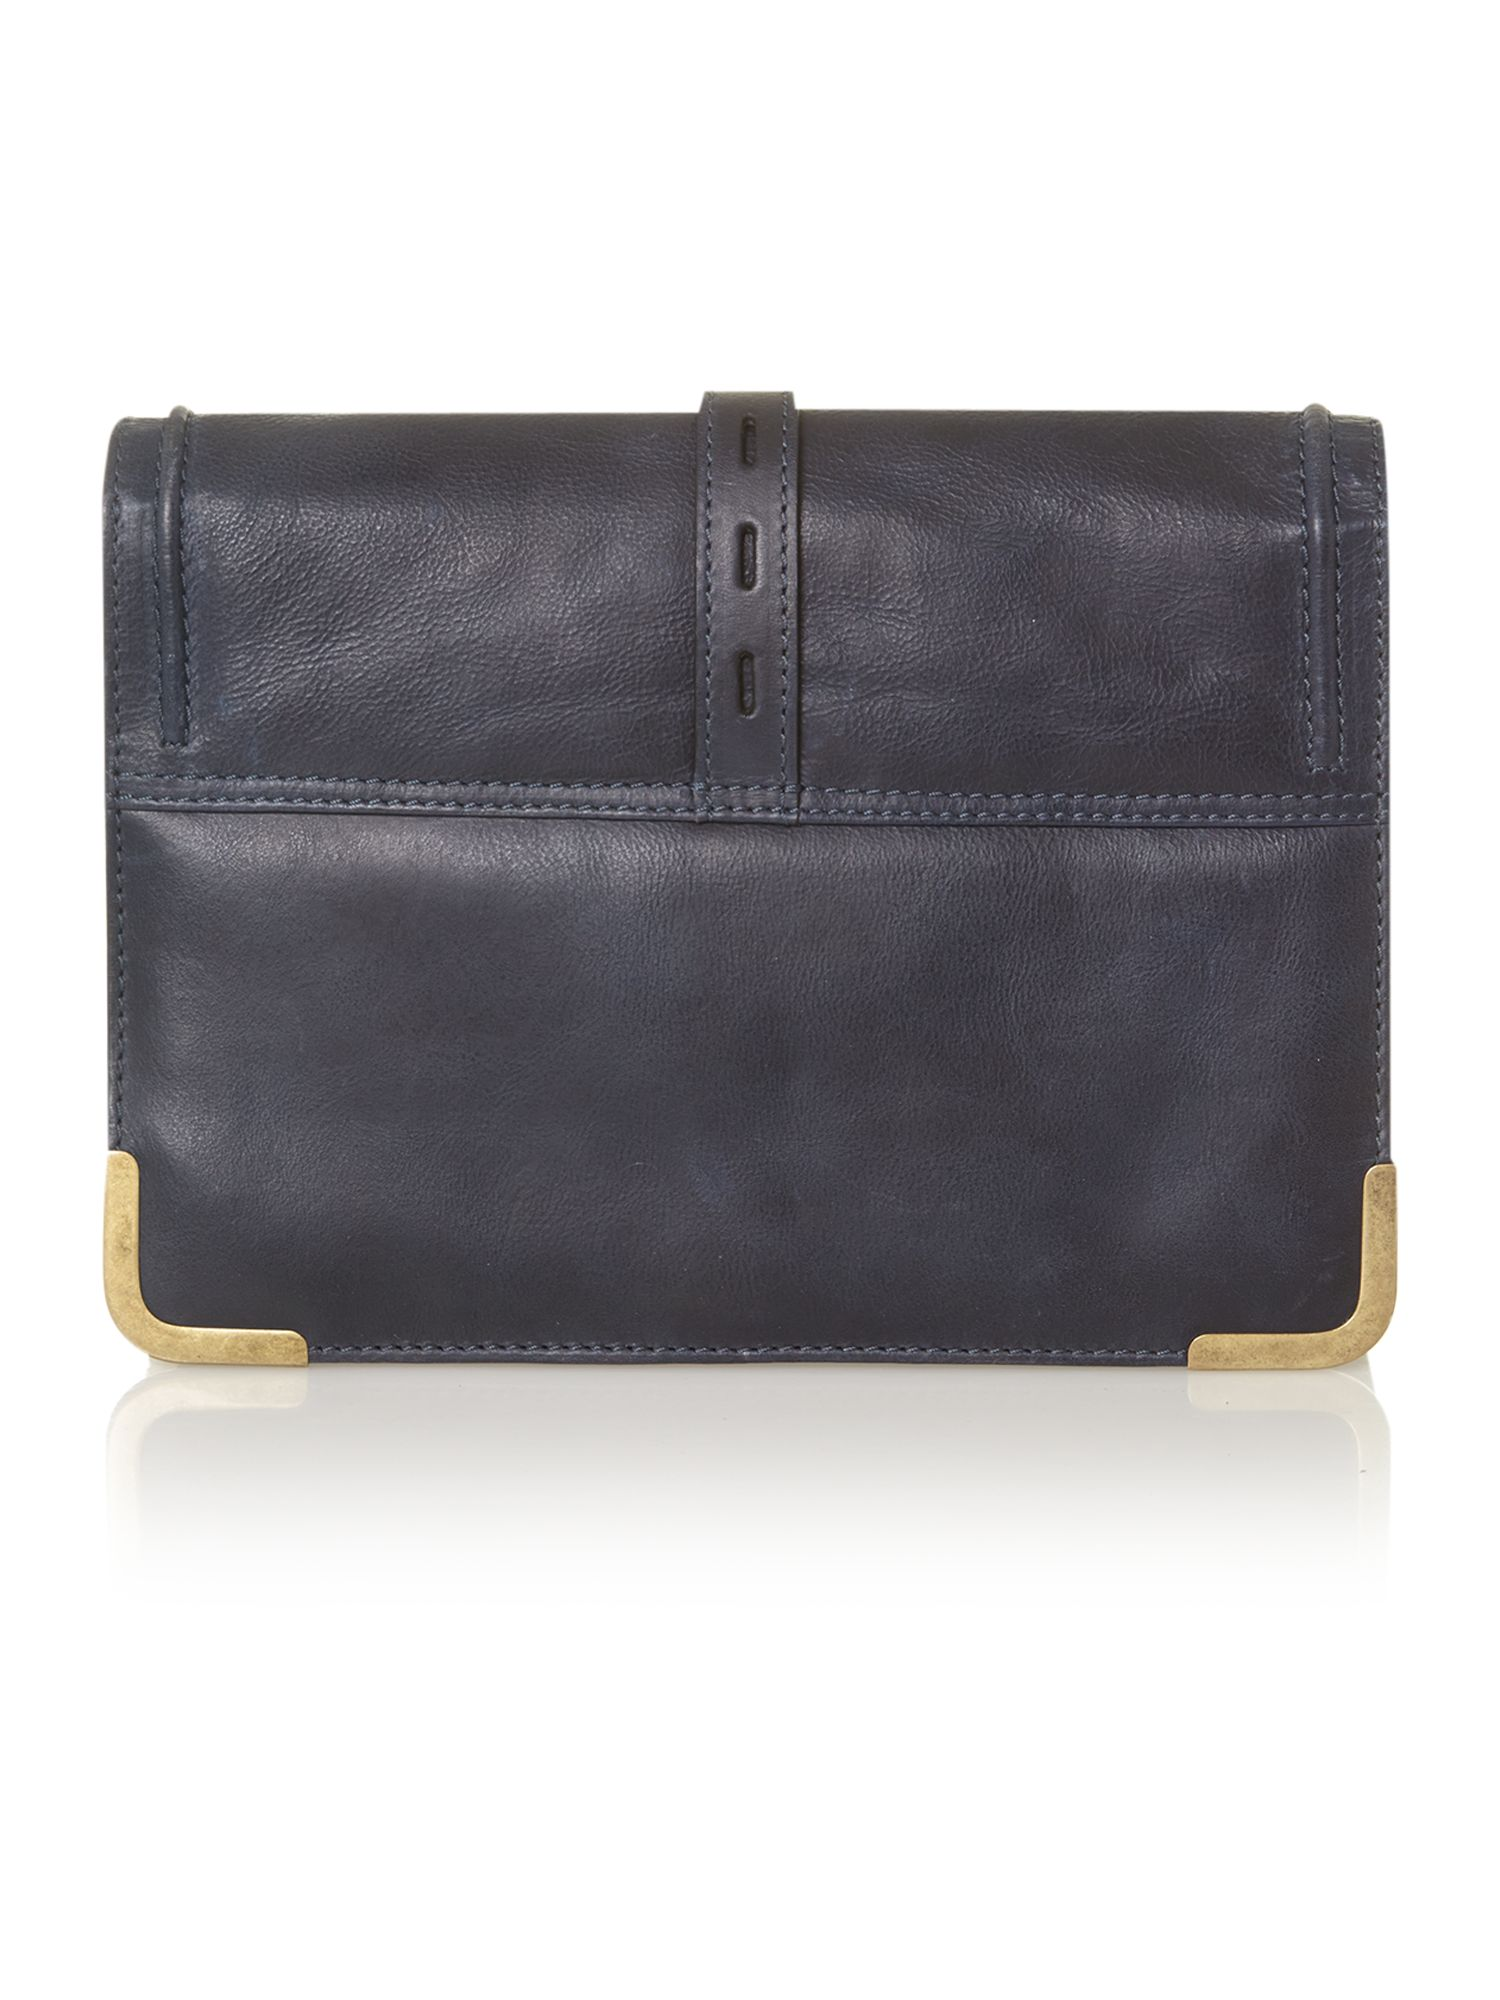 Sylvie cross body bag